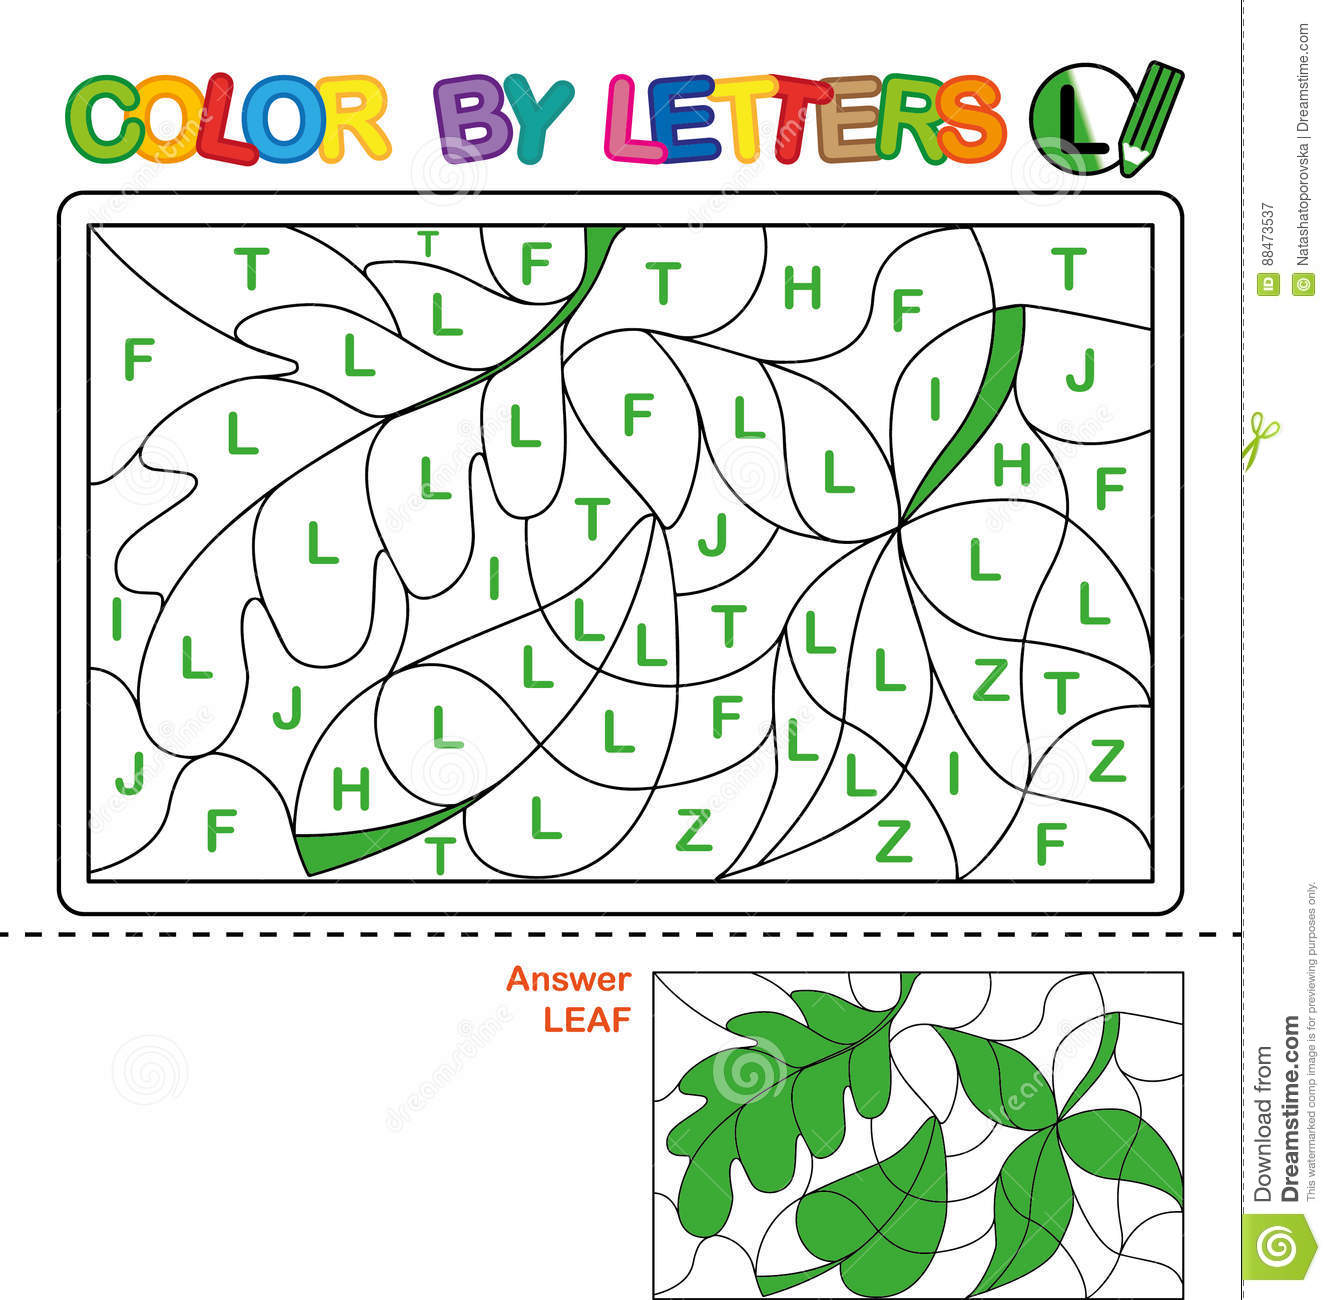 Download Color By Letter Puzzle For Children Leaf Stock Vector